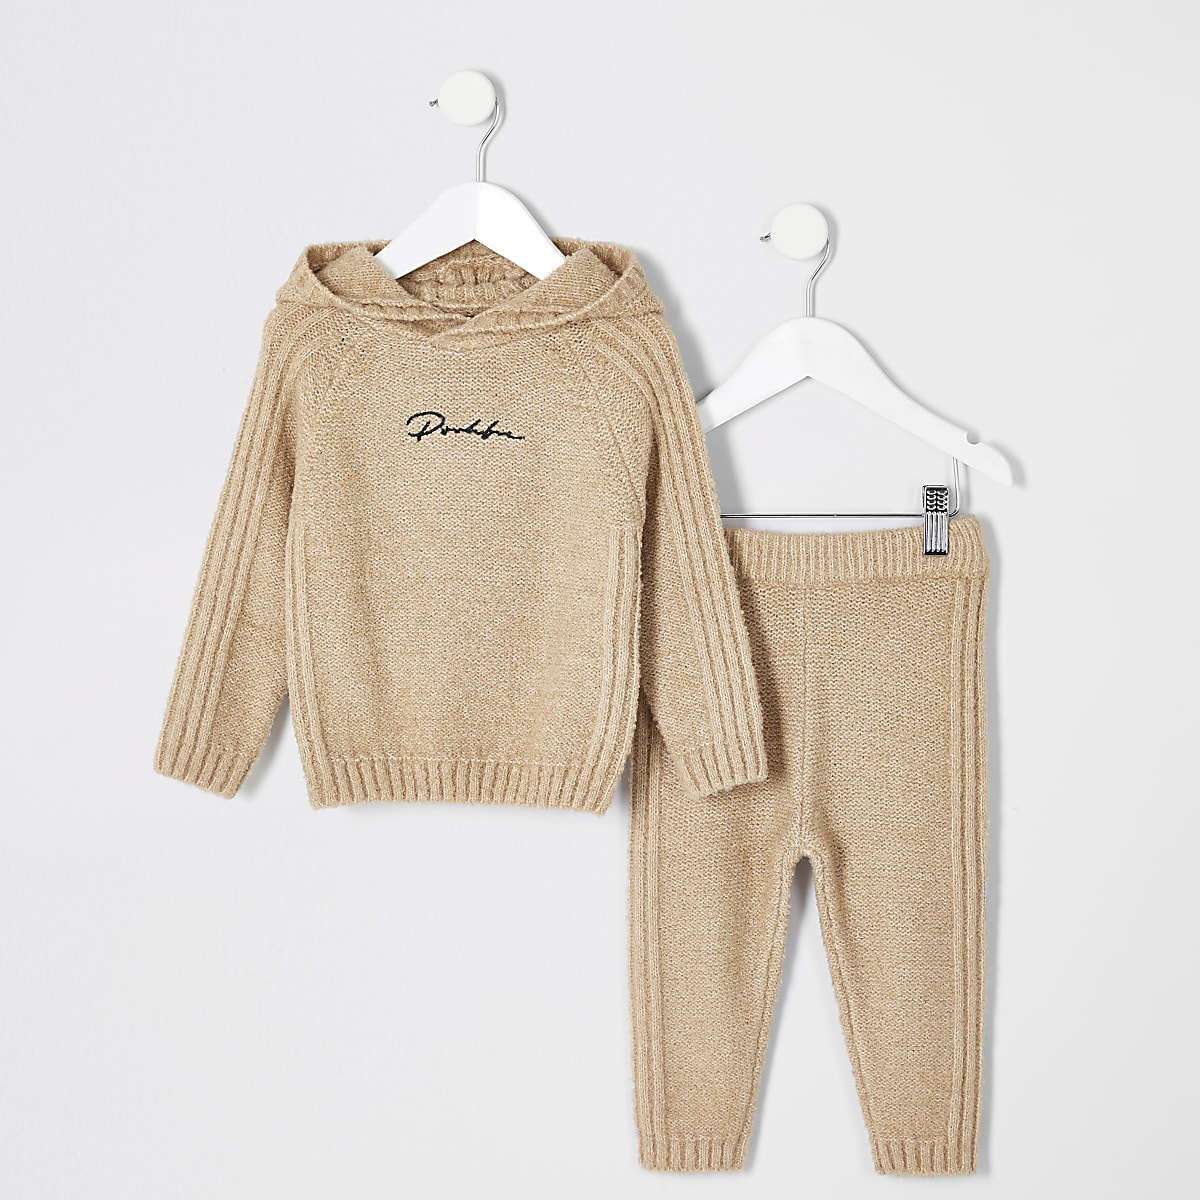 Mini boys light brown Prolific knitted outfit